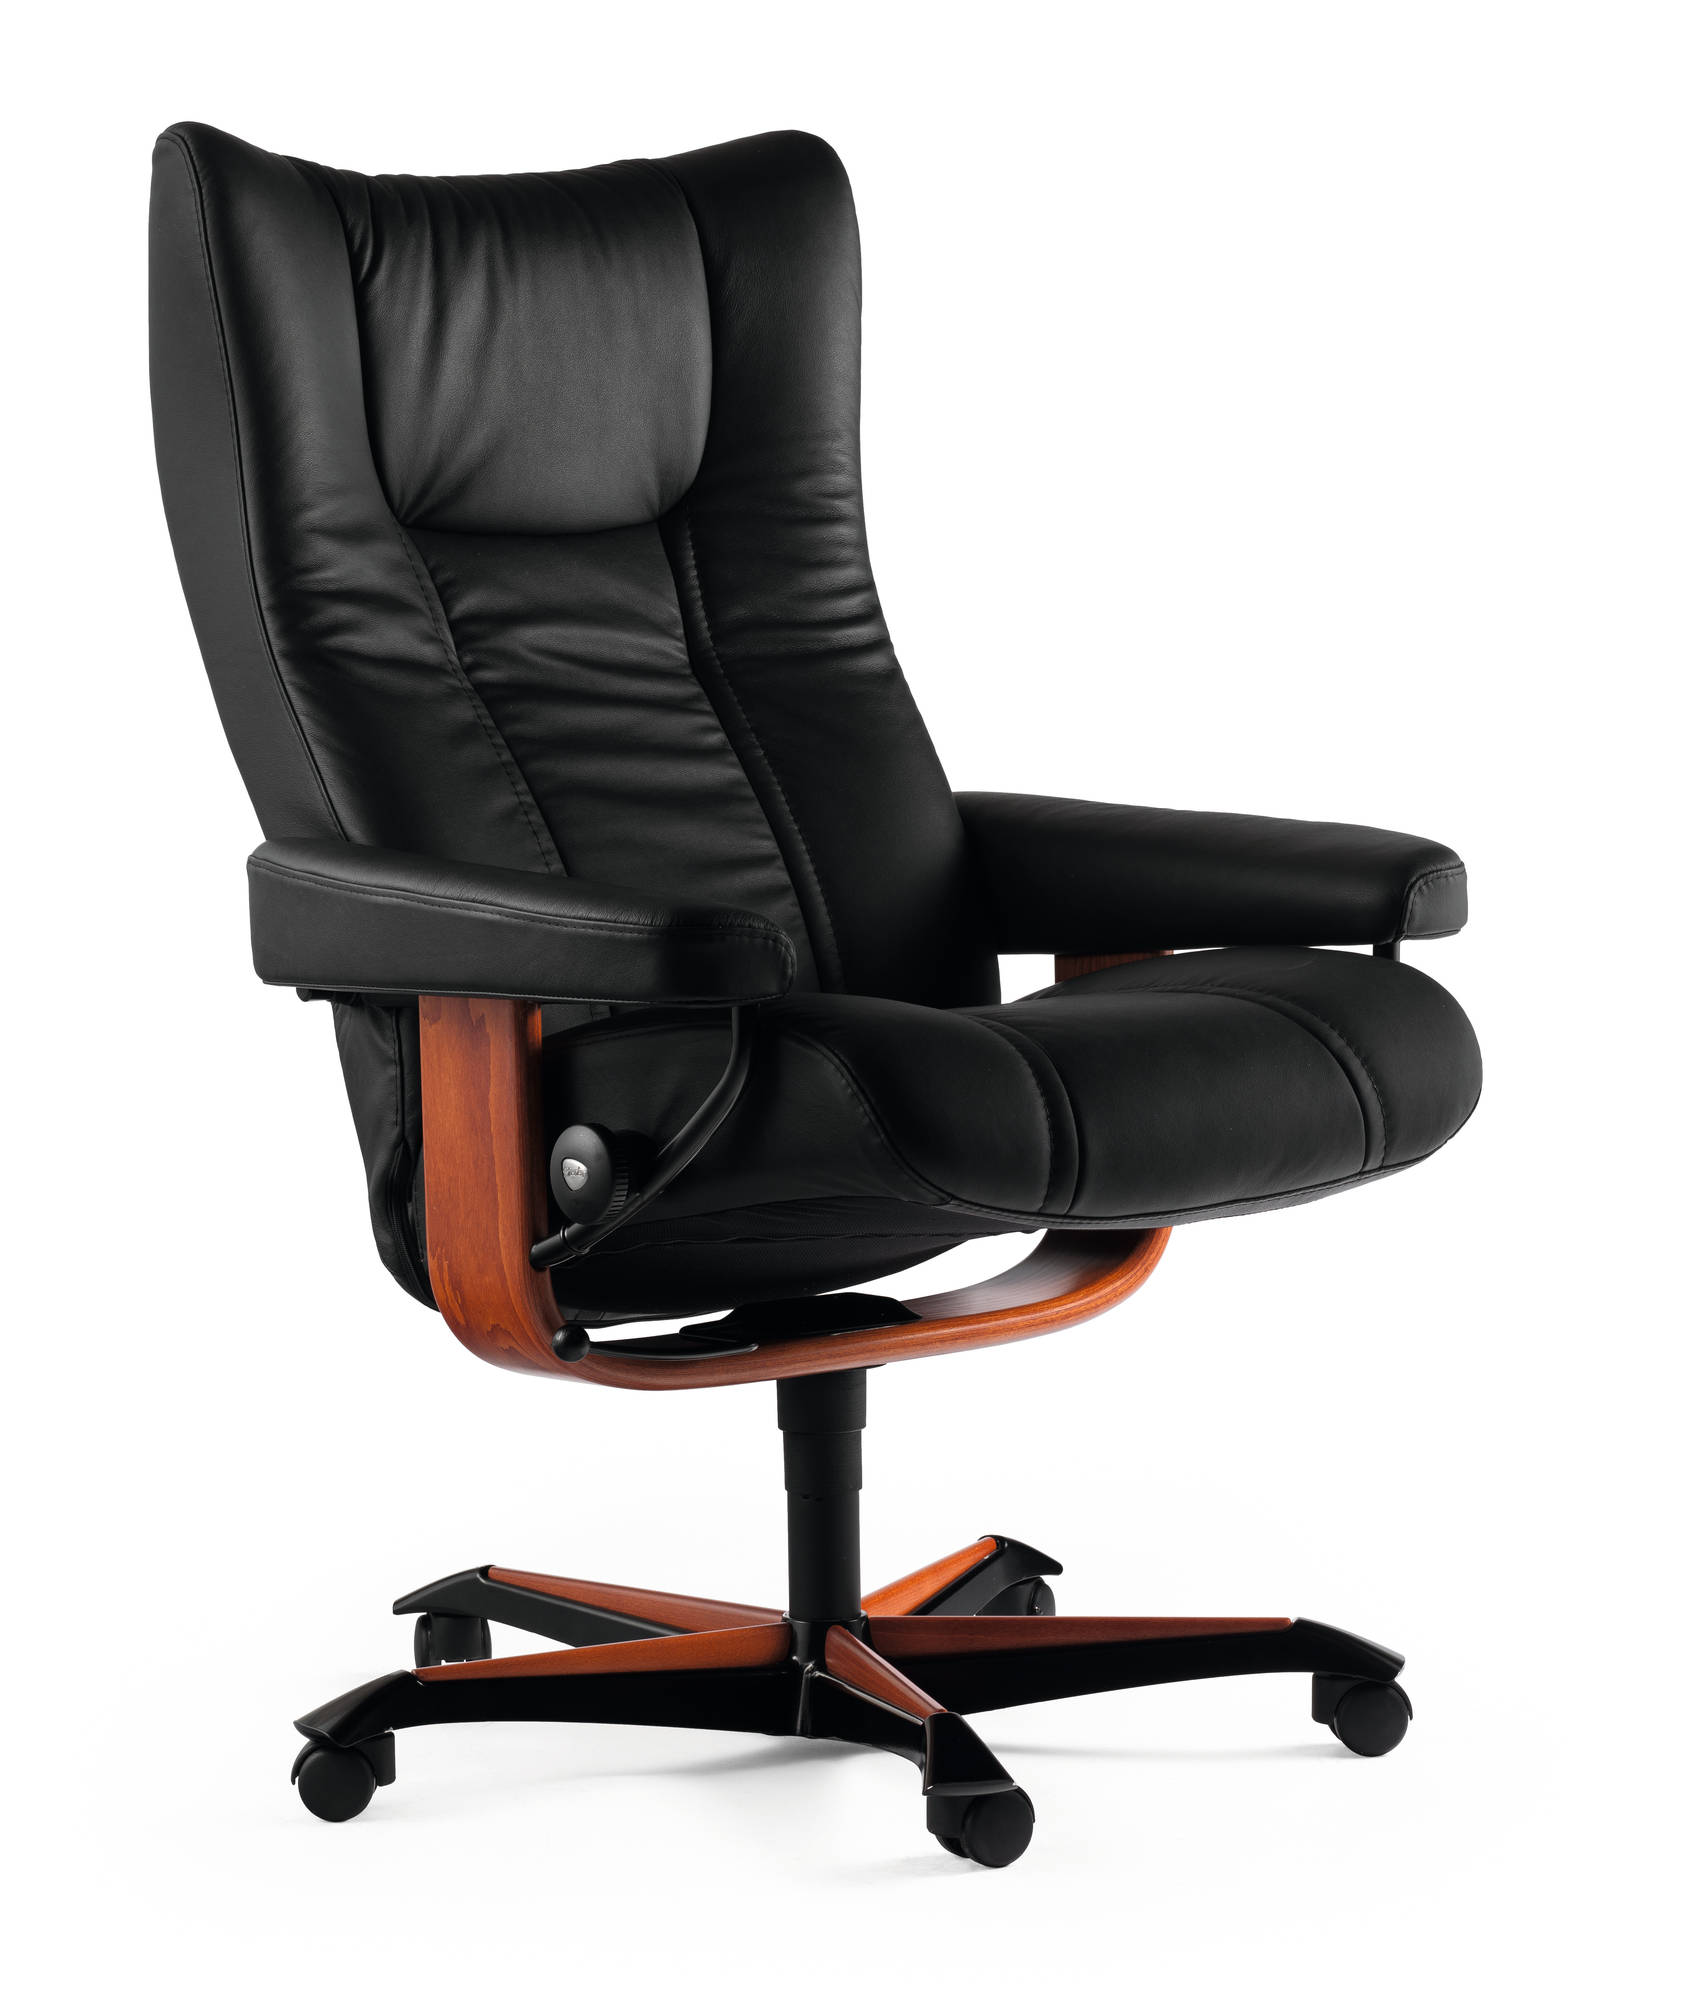 Stressless Wing matches Ekornes Eagle.